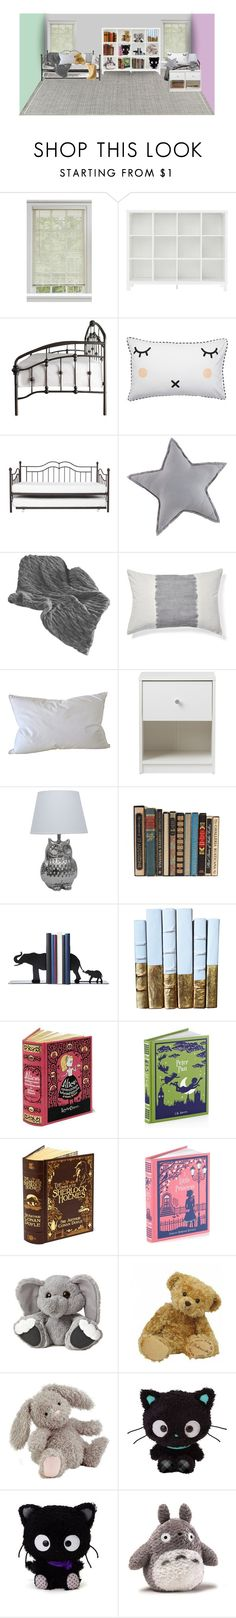 """""""A Room For Two"""" by annesuniverse ❤ liked on Polyvore featuring interior, interiors, interior design, home, home decor, interior decorating, Inspire Q, Natural Comfort, Jellycat and Hello Kitty"""